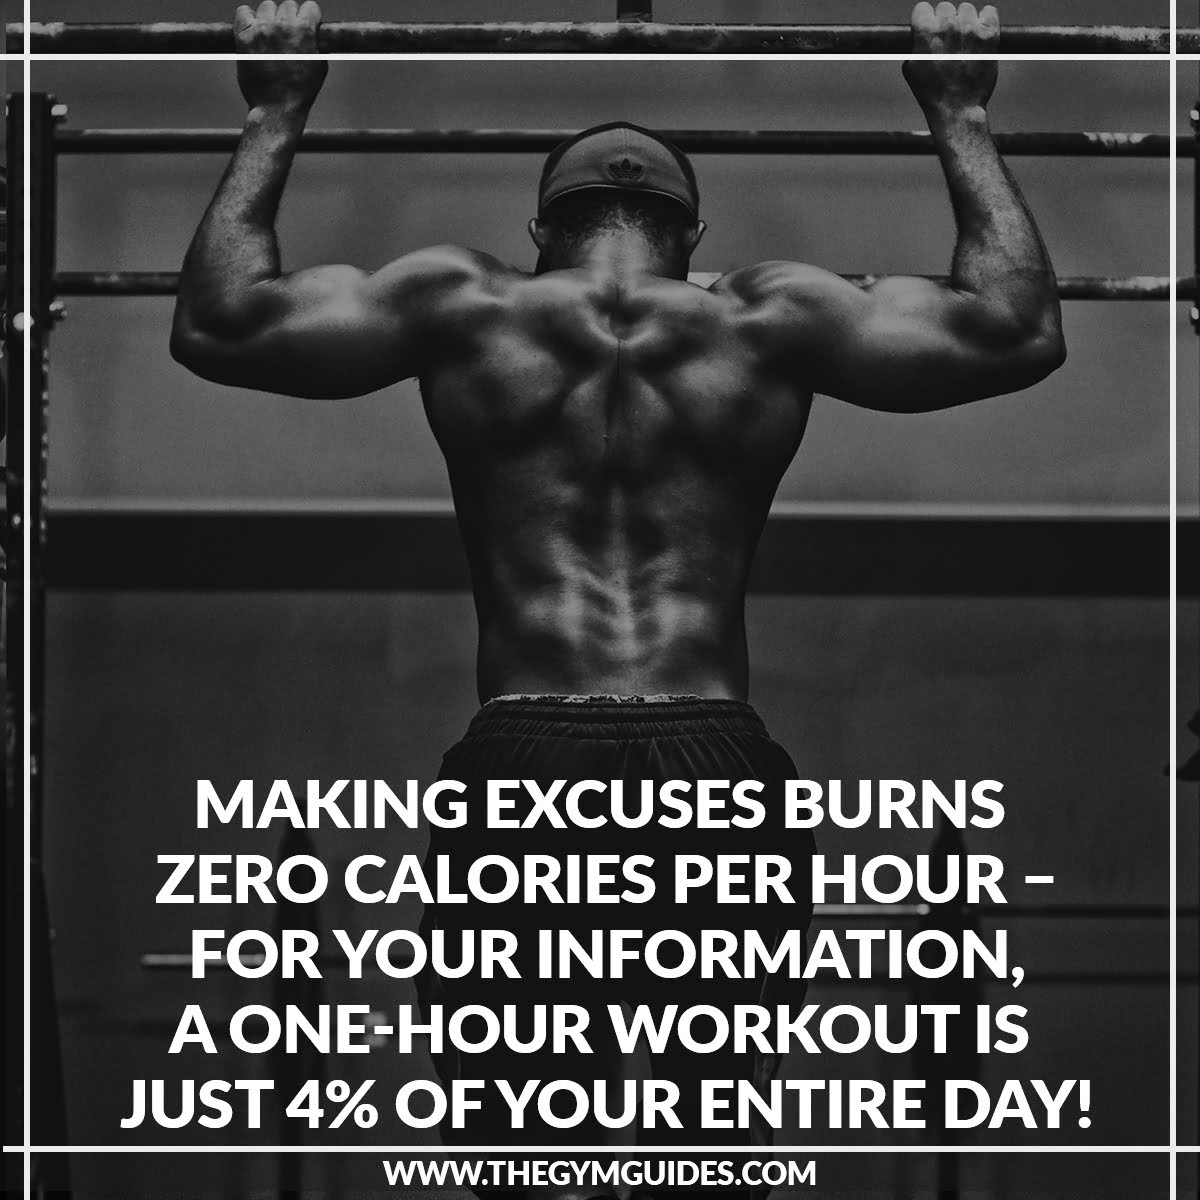 Making excuses Burns ZERO Calories per hour – for your information, a one-hour workout is just 4% of your entire day!